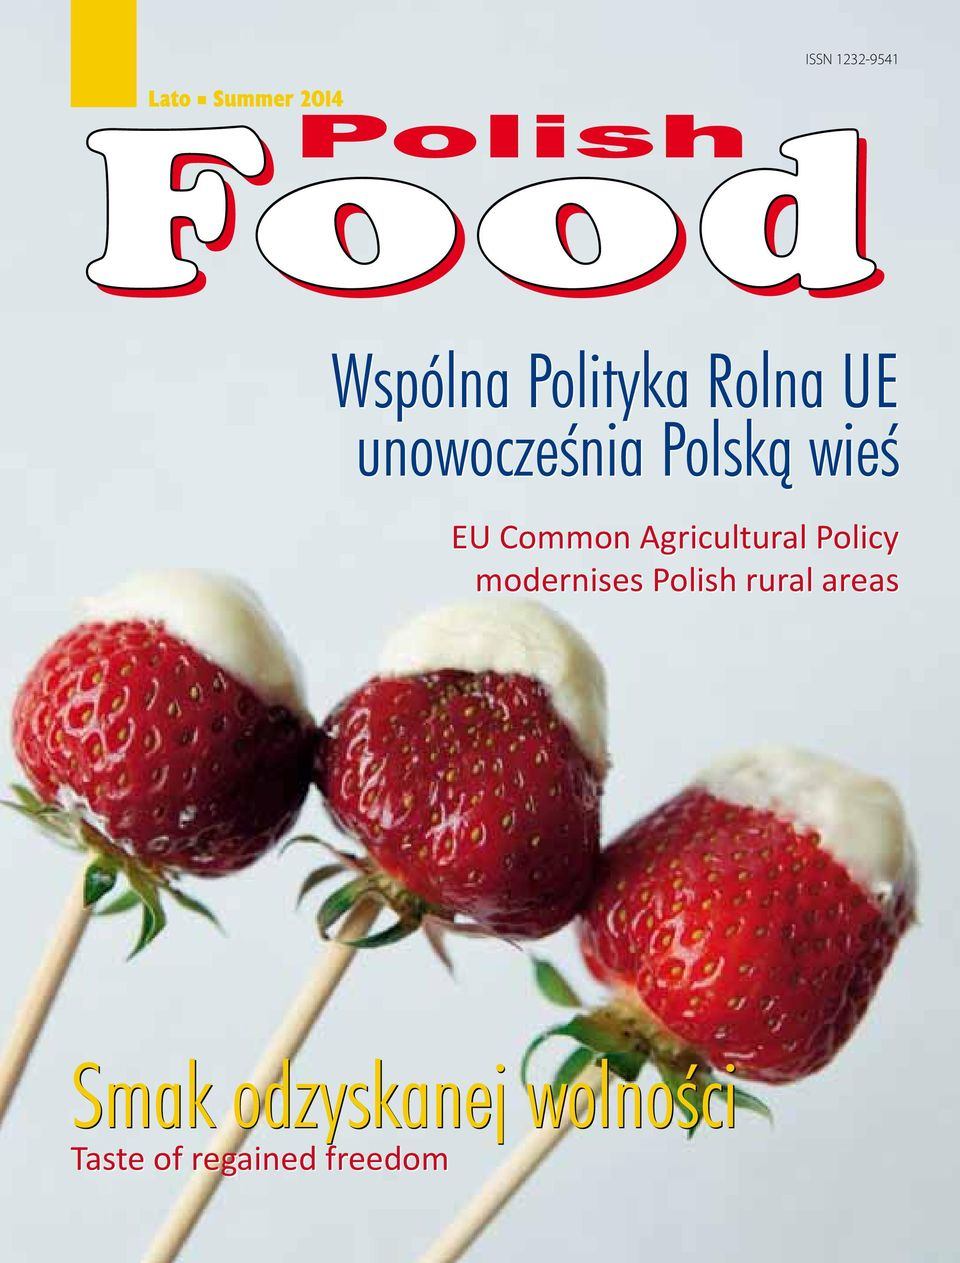 Agricultural Policy modernises Polish rural